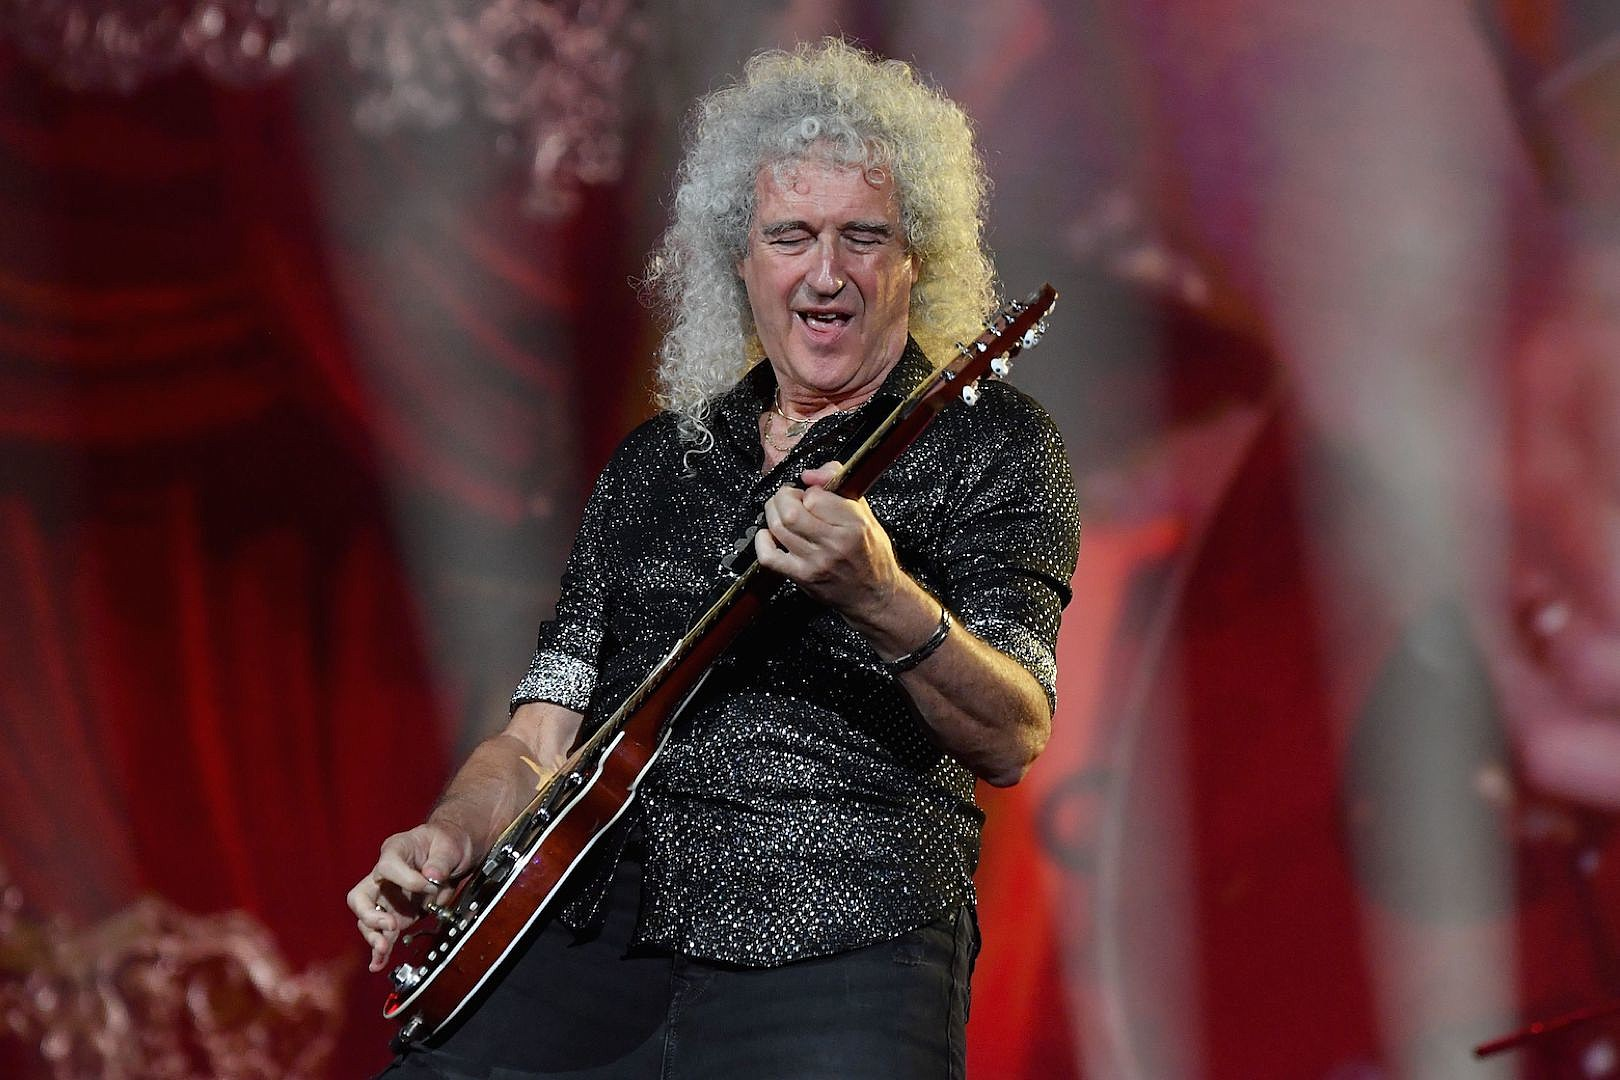 Brian May Had a Heart Attack Amid 'Bizarre Gardening Accident'